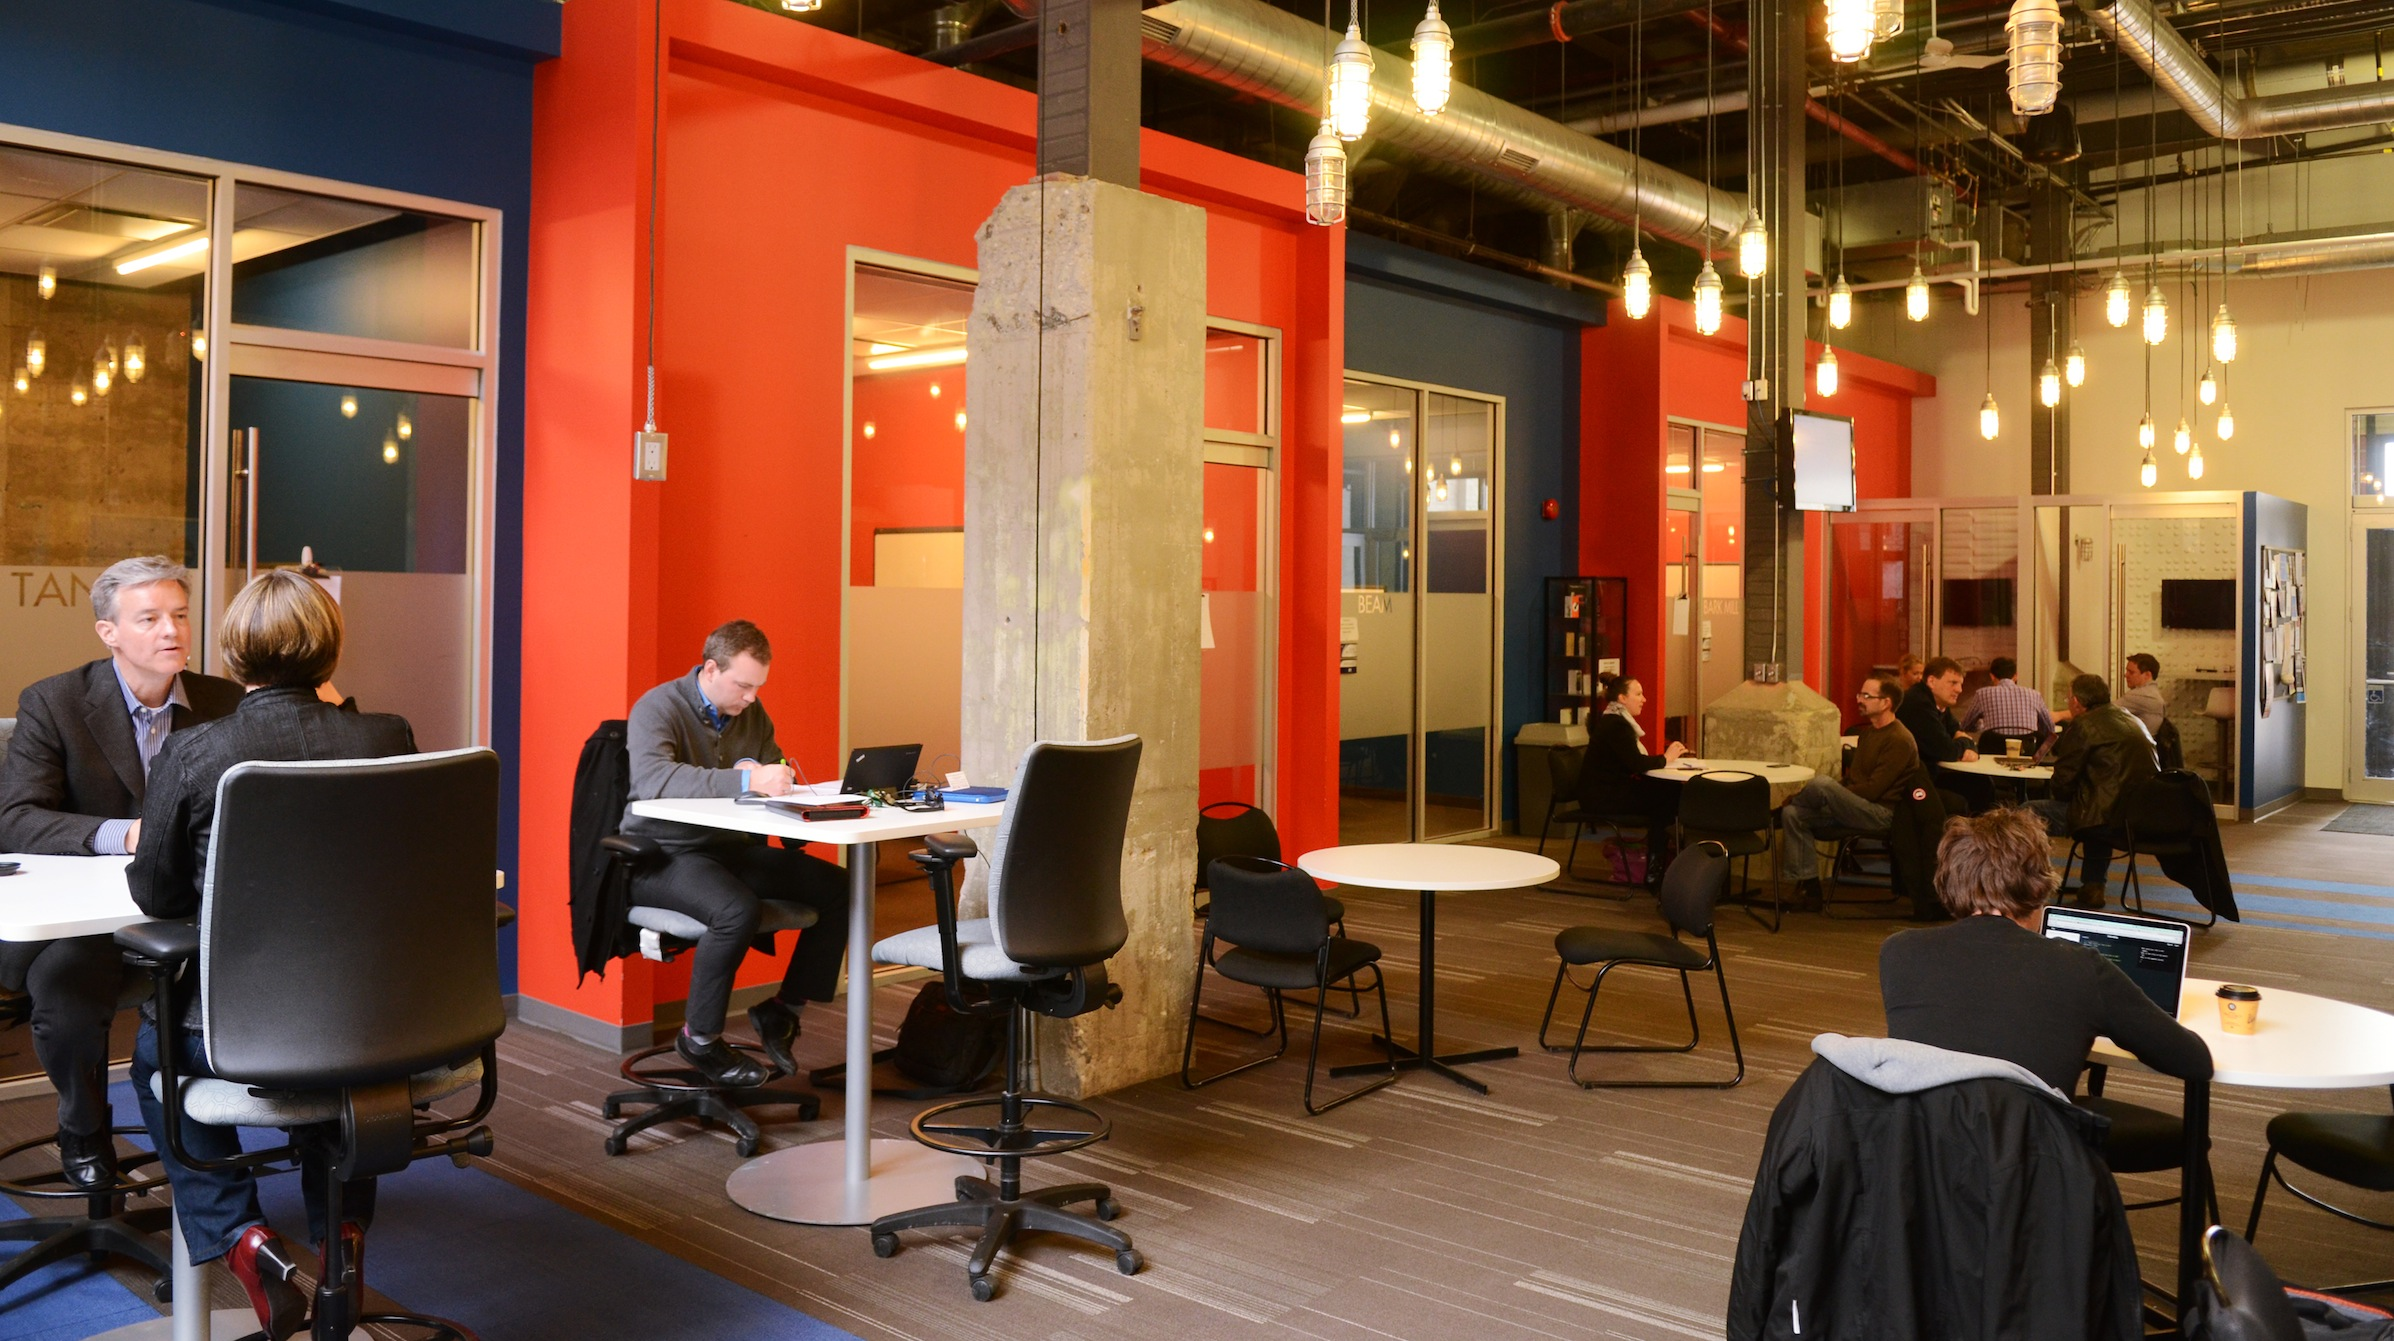 People huddle in discussion within Communitech in Kitchener's historic Tannery District in Kitchener, Ontario, March 18, 2014. Kitchener, historically the blue-collar twin to the university city of Waterloo, is today home to chic offices such as the Communitech building - a converted brick structure in the the historic Tannery District, adorned with modern art, which acts as an unofficial clubhouse for many small tech companies. Picture taken March 18, 2014.  REUTERS/Euan Rocha  (CANADA - Tags: EDUCATION SCIENCE TECHNOLOGY BUSINESS) - RTR3LJYJ